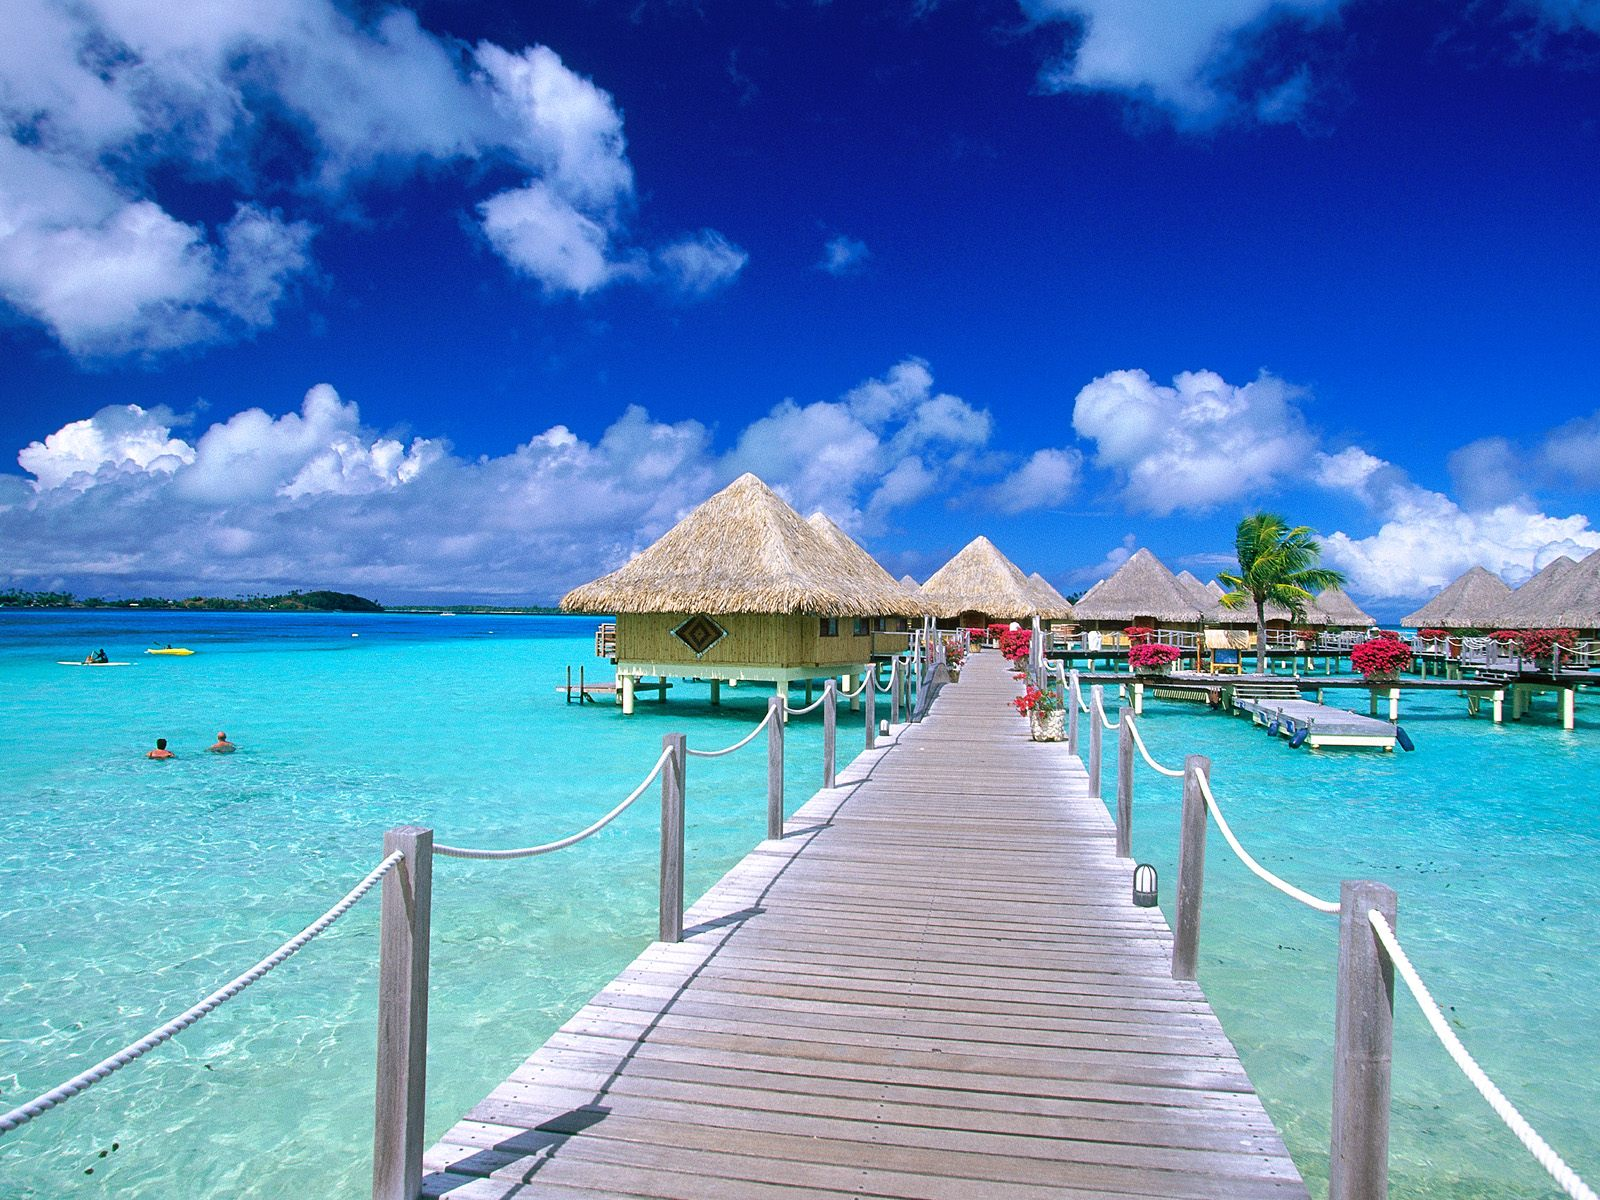 ... tropical island beach scenery holiday village desktop wallpaper